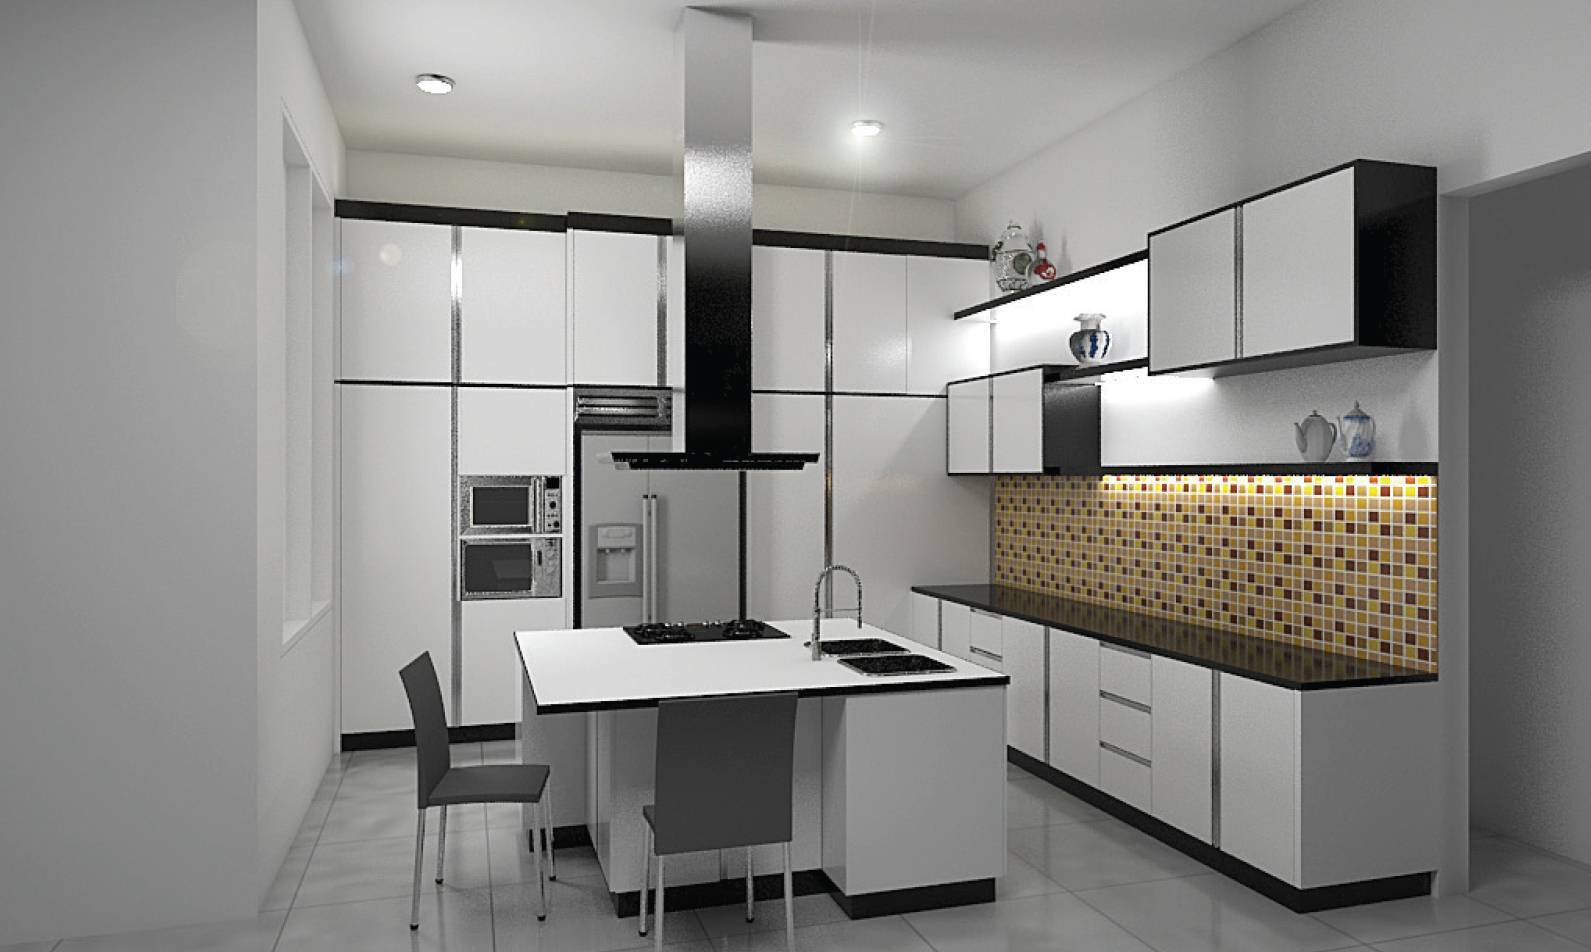 Independent Interior Design & Build Residential Kitchen Jakarta Jakarta Kitchen Modern  1840